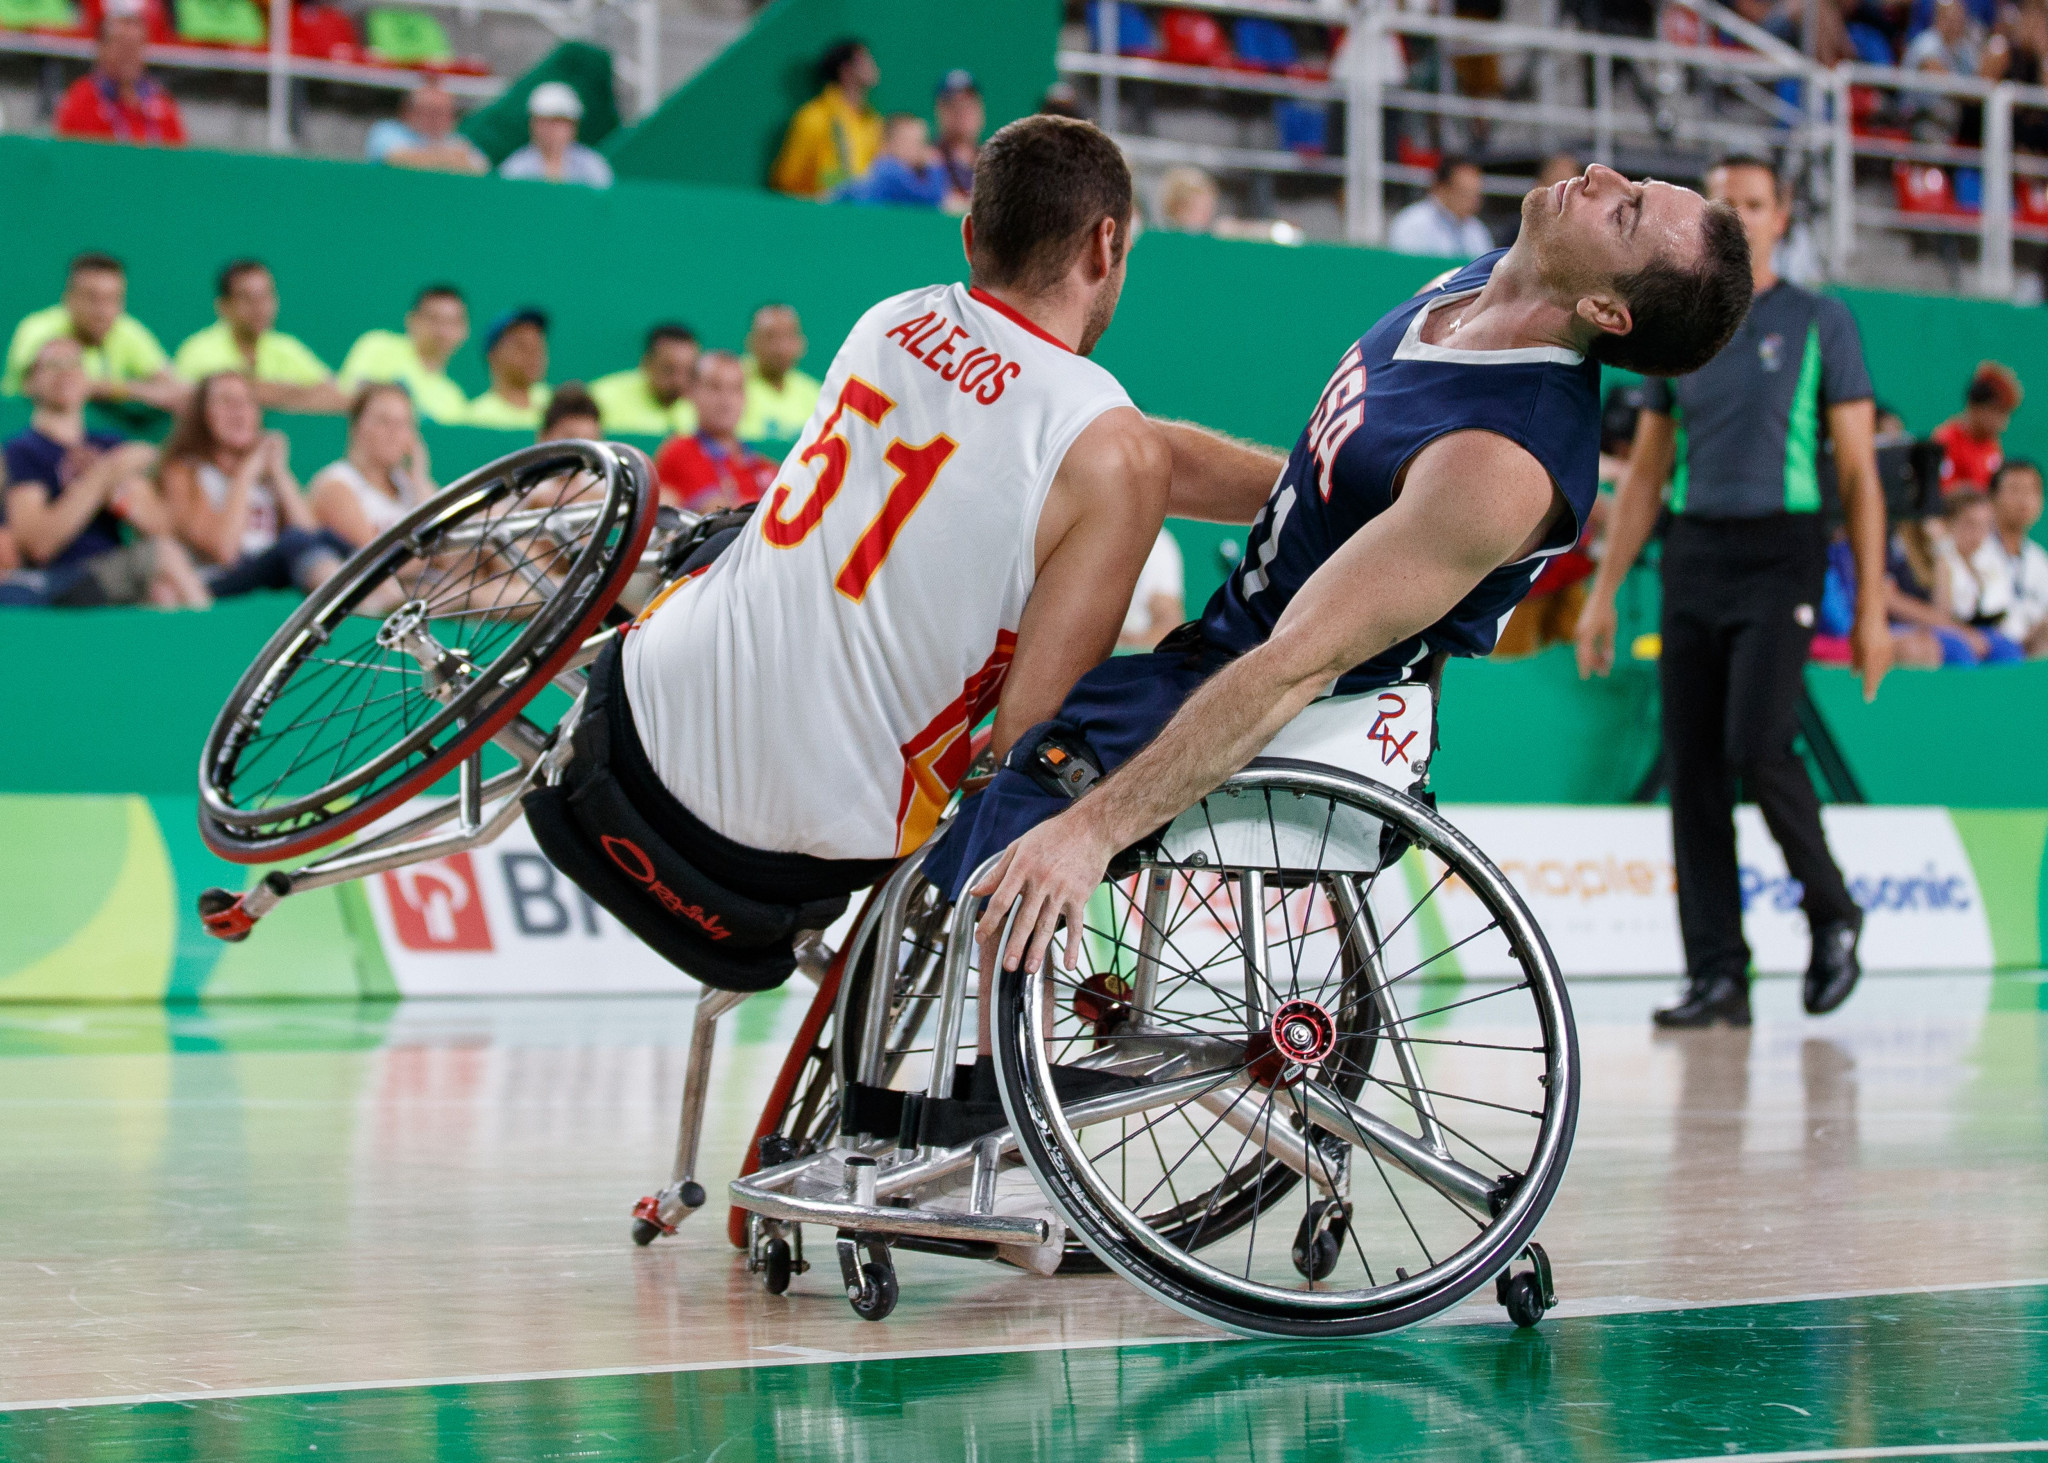 IWBF introduce repechage system for Paralympic and World Championship qualification